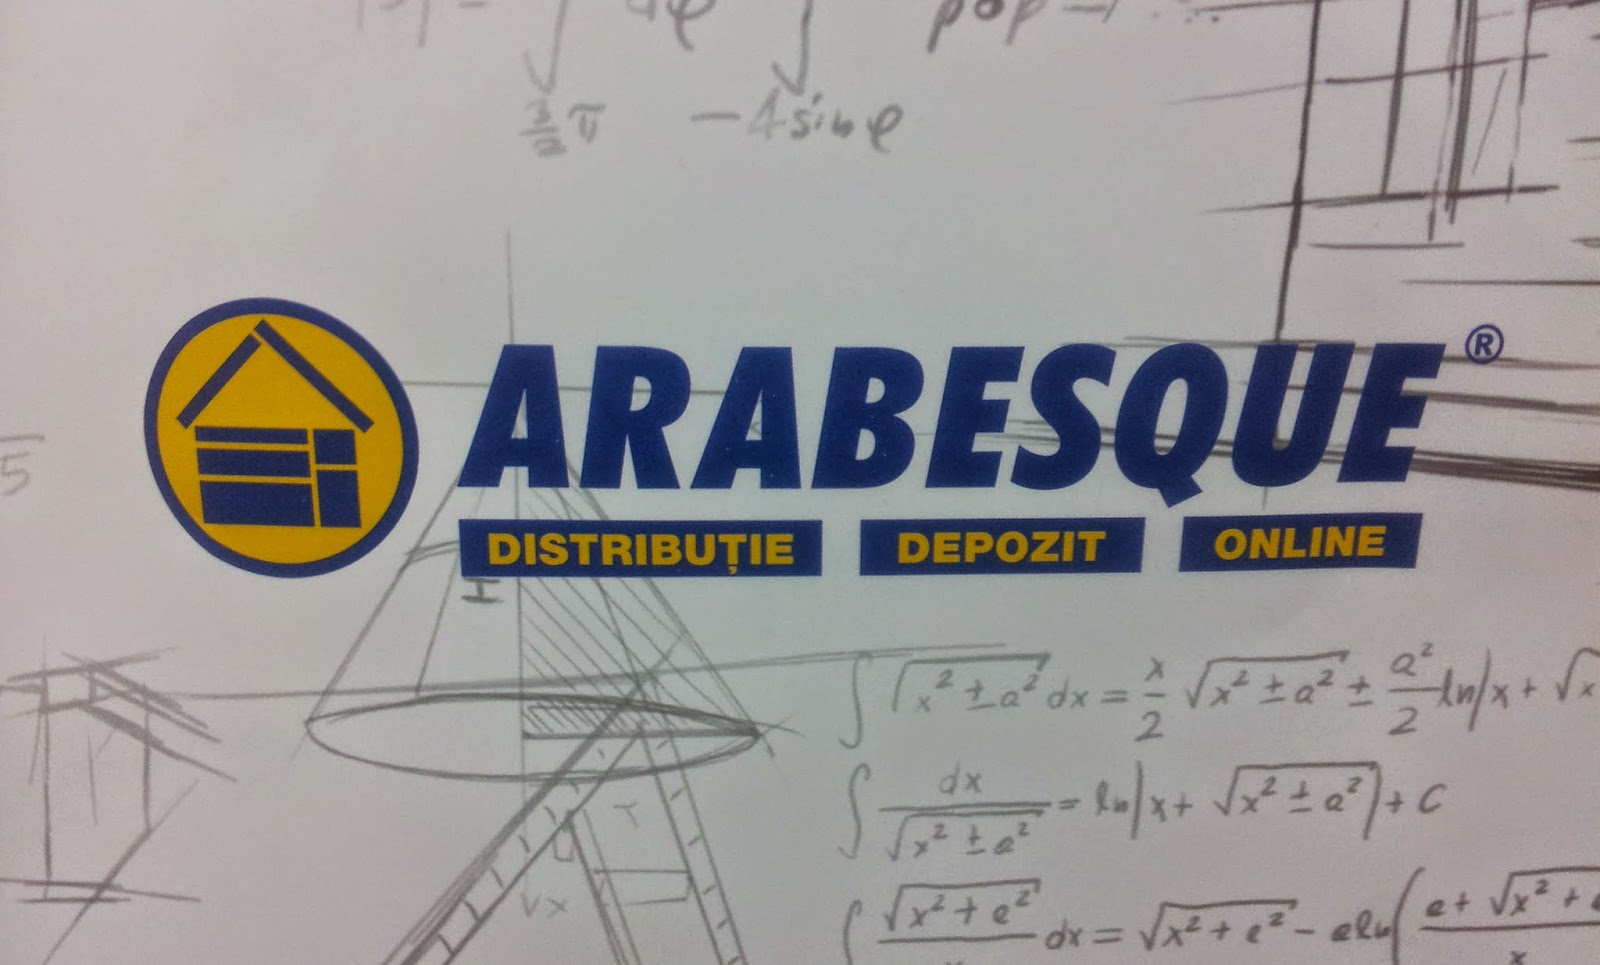 Arabesque - materiale de construcții